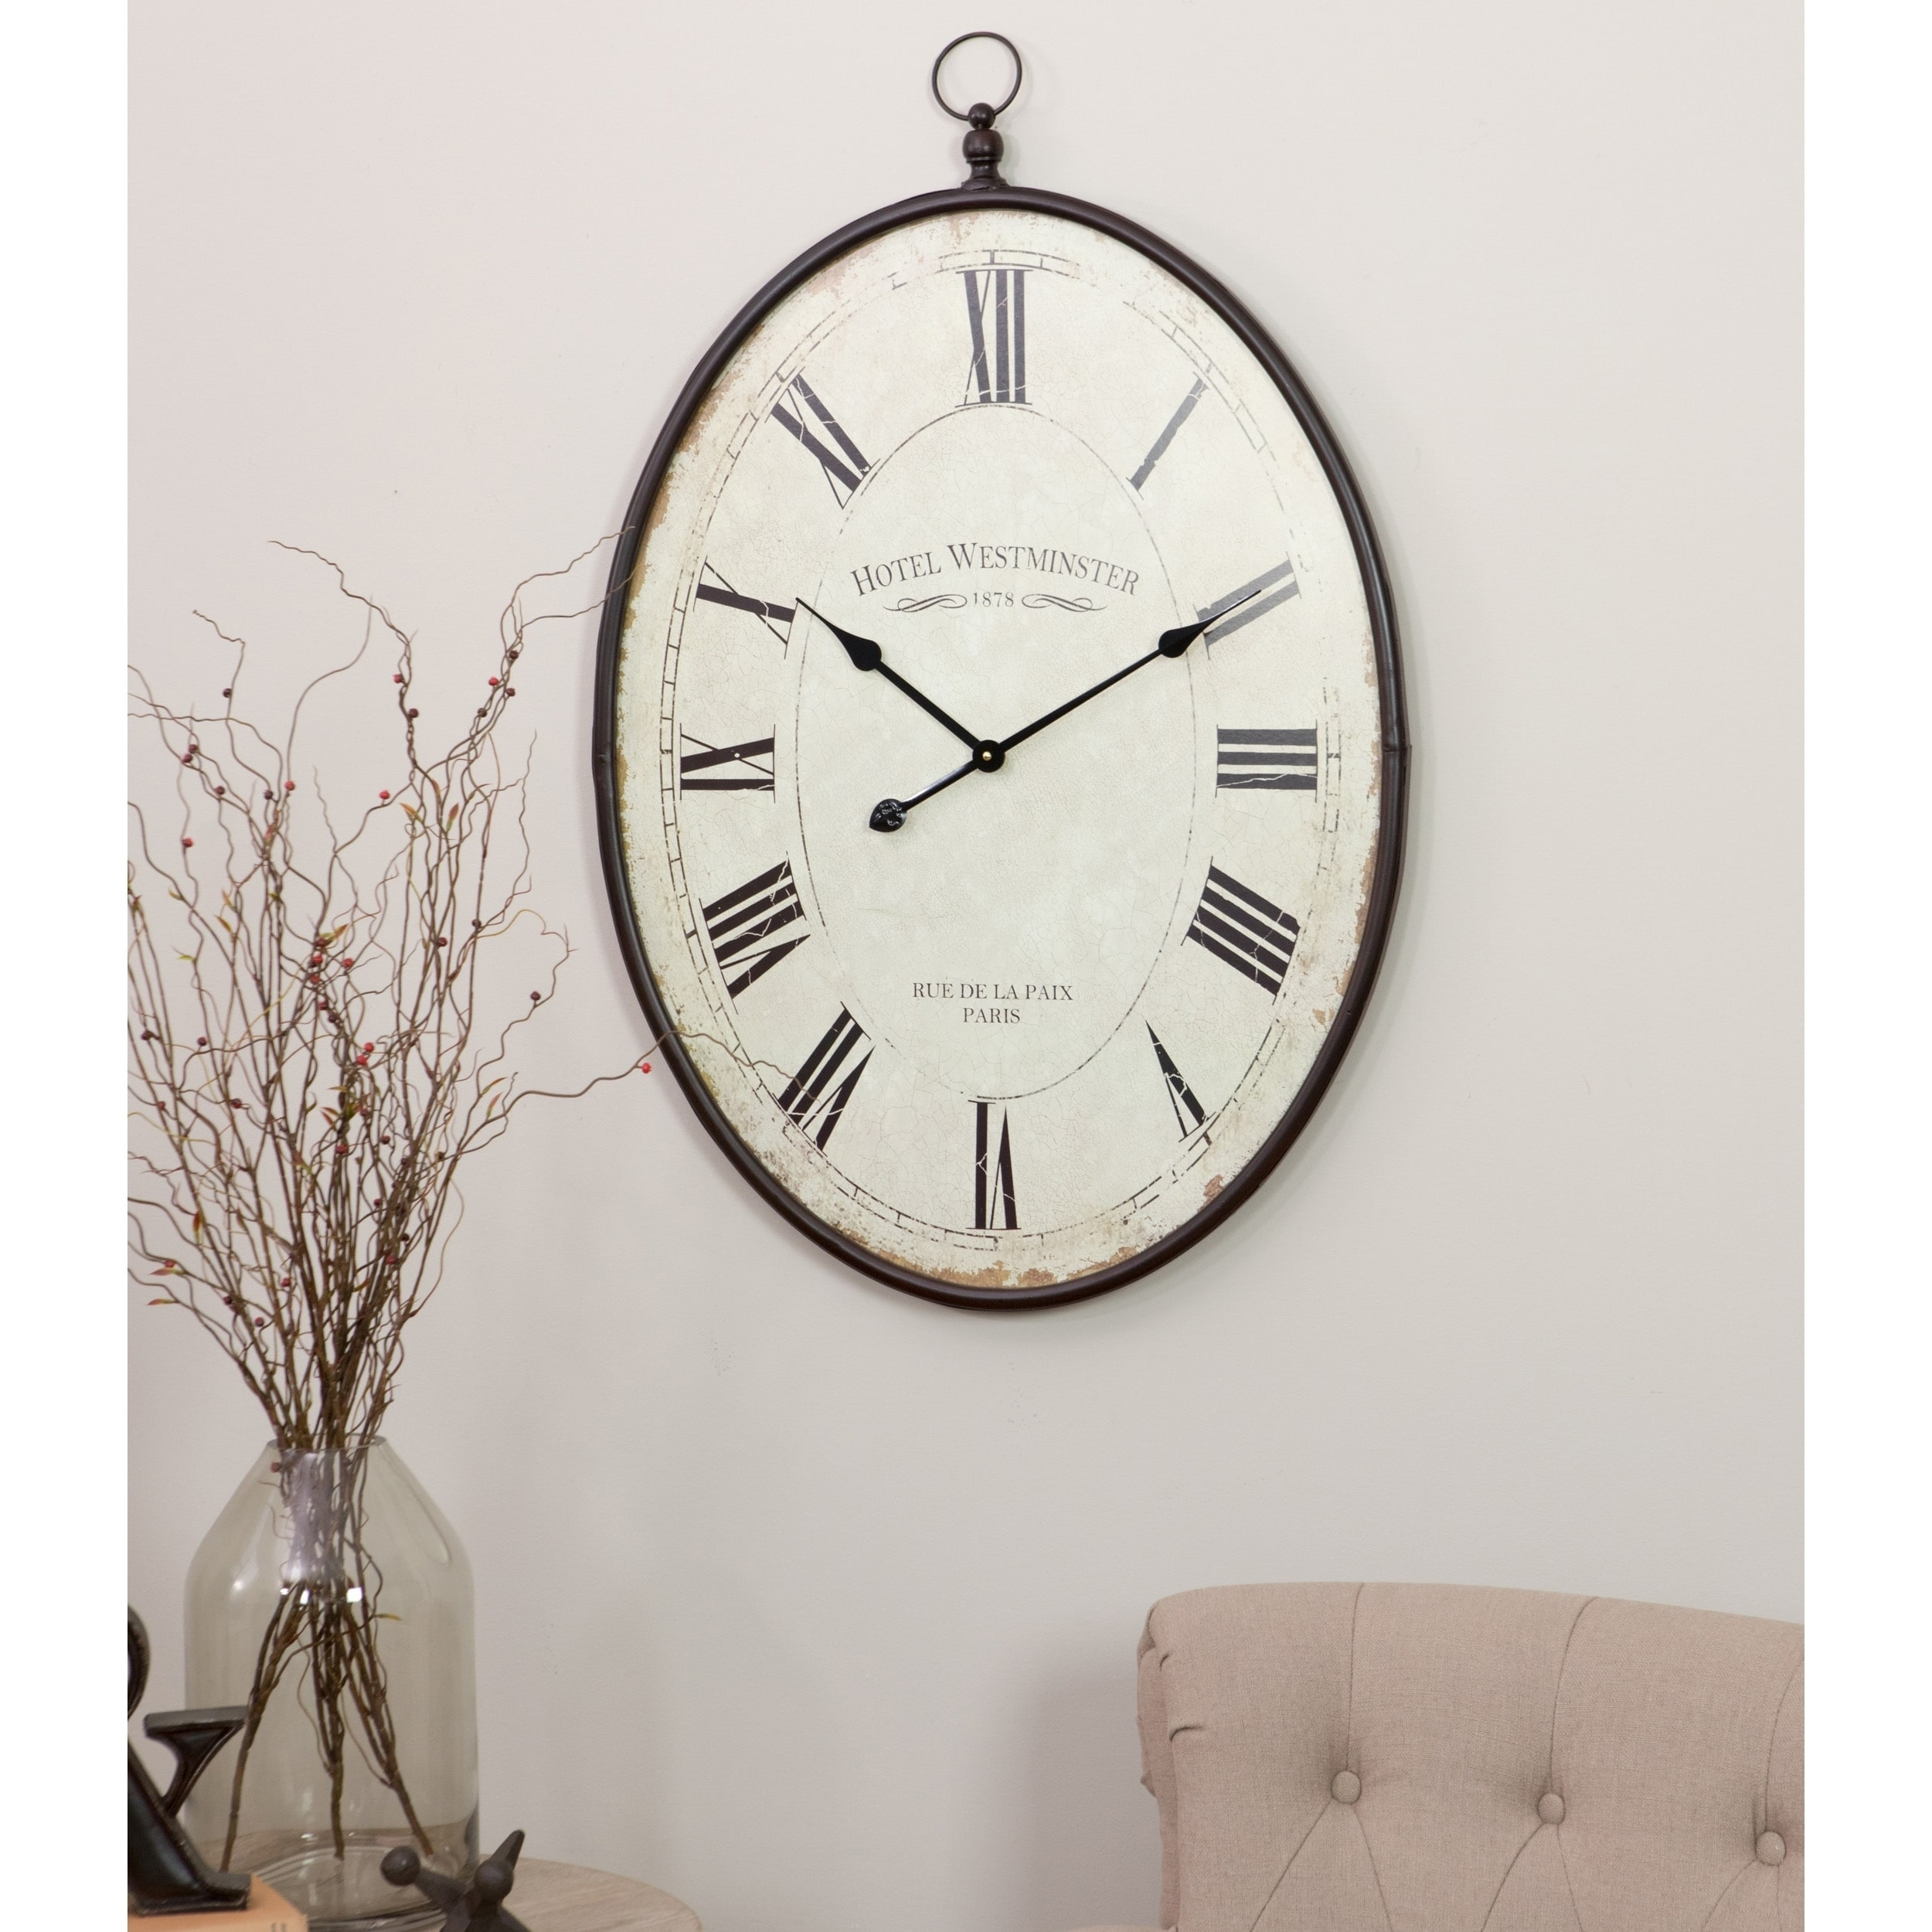 Shop ines large oval wall clock free shipping today overstock com 22466224